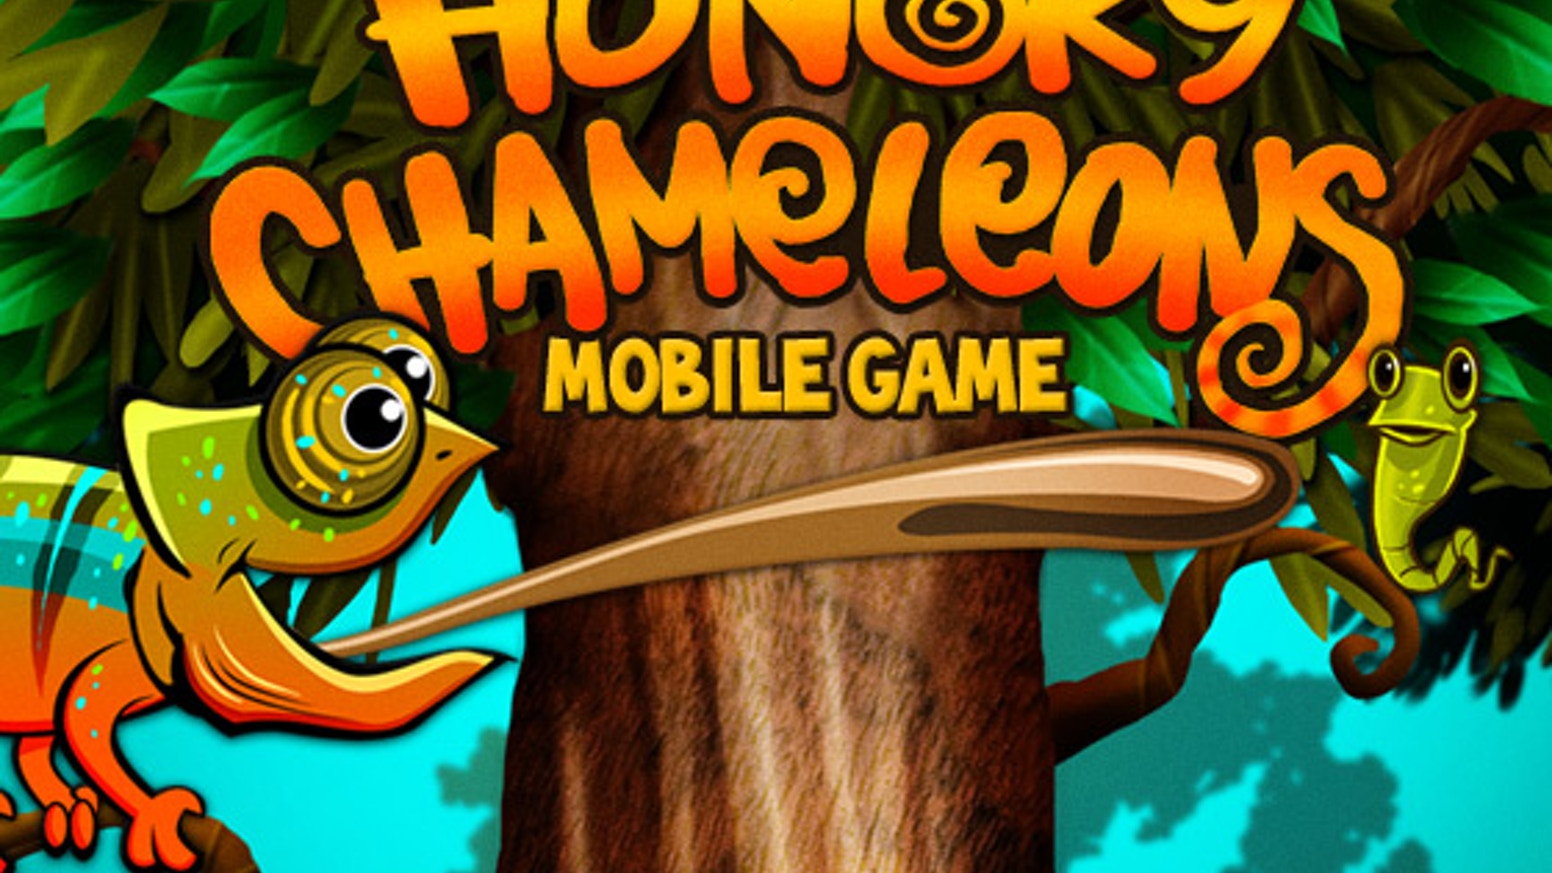 Fun Addicting Game Apps - Hungry chameleons is a fun and addictive game for ios and android we need your help to finish development and get it out